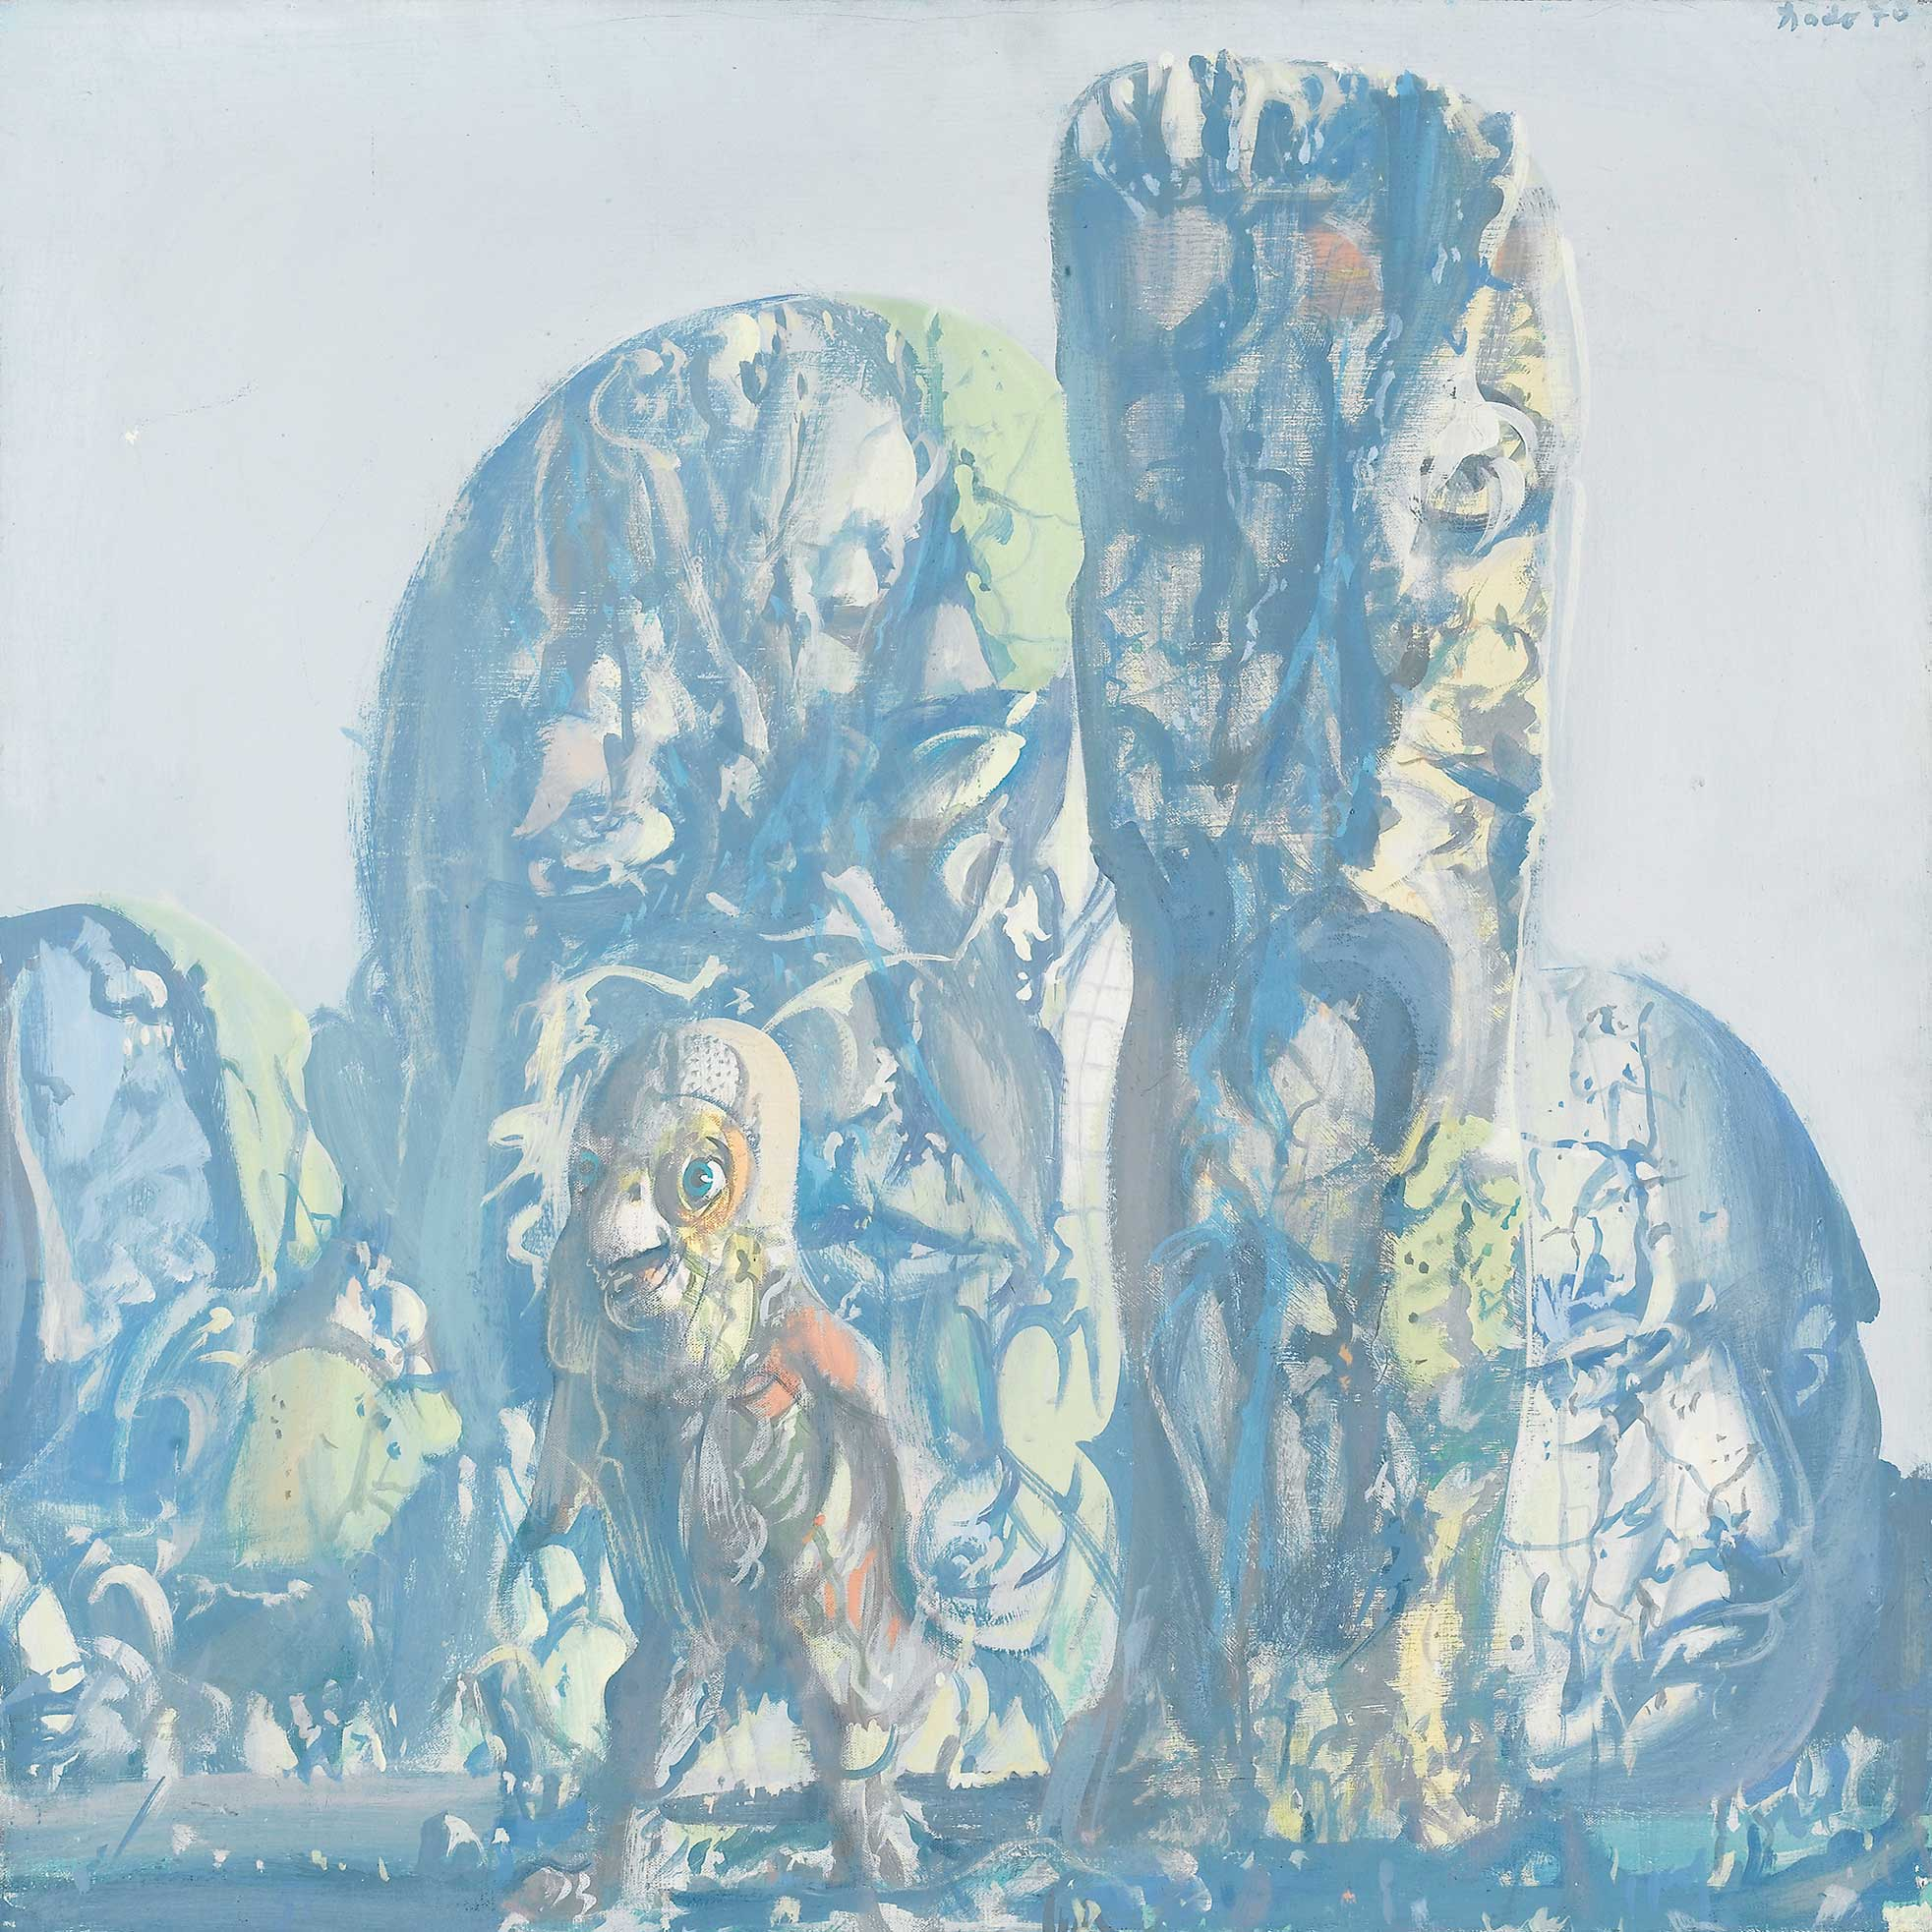 Dado's painting: The Gallery of Ancestors III, 1970